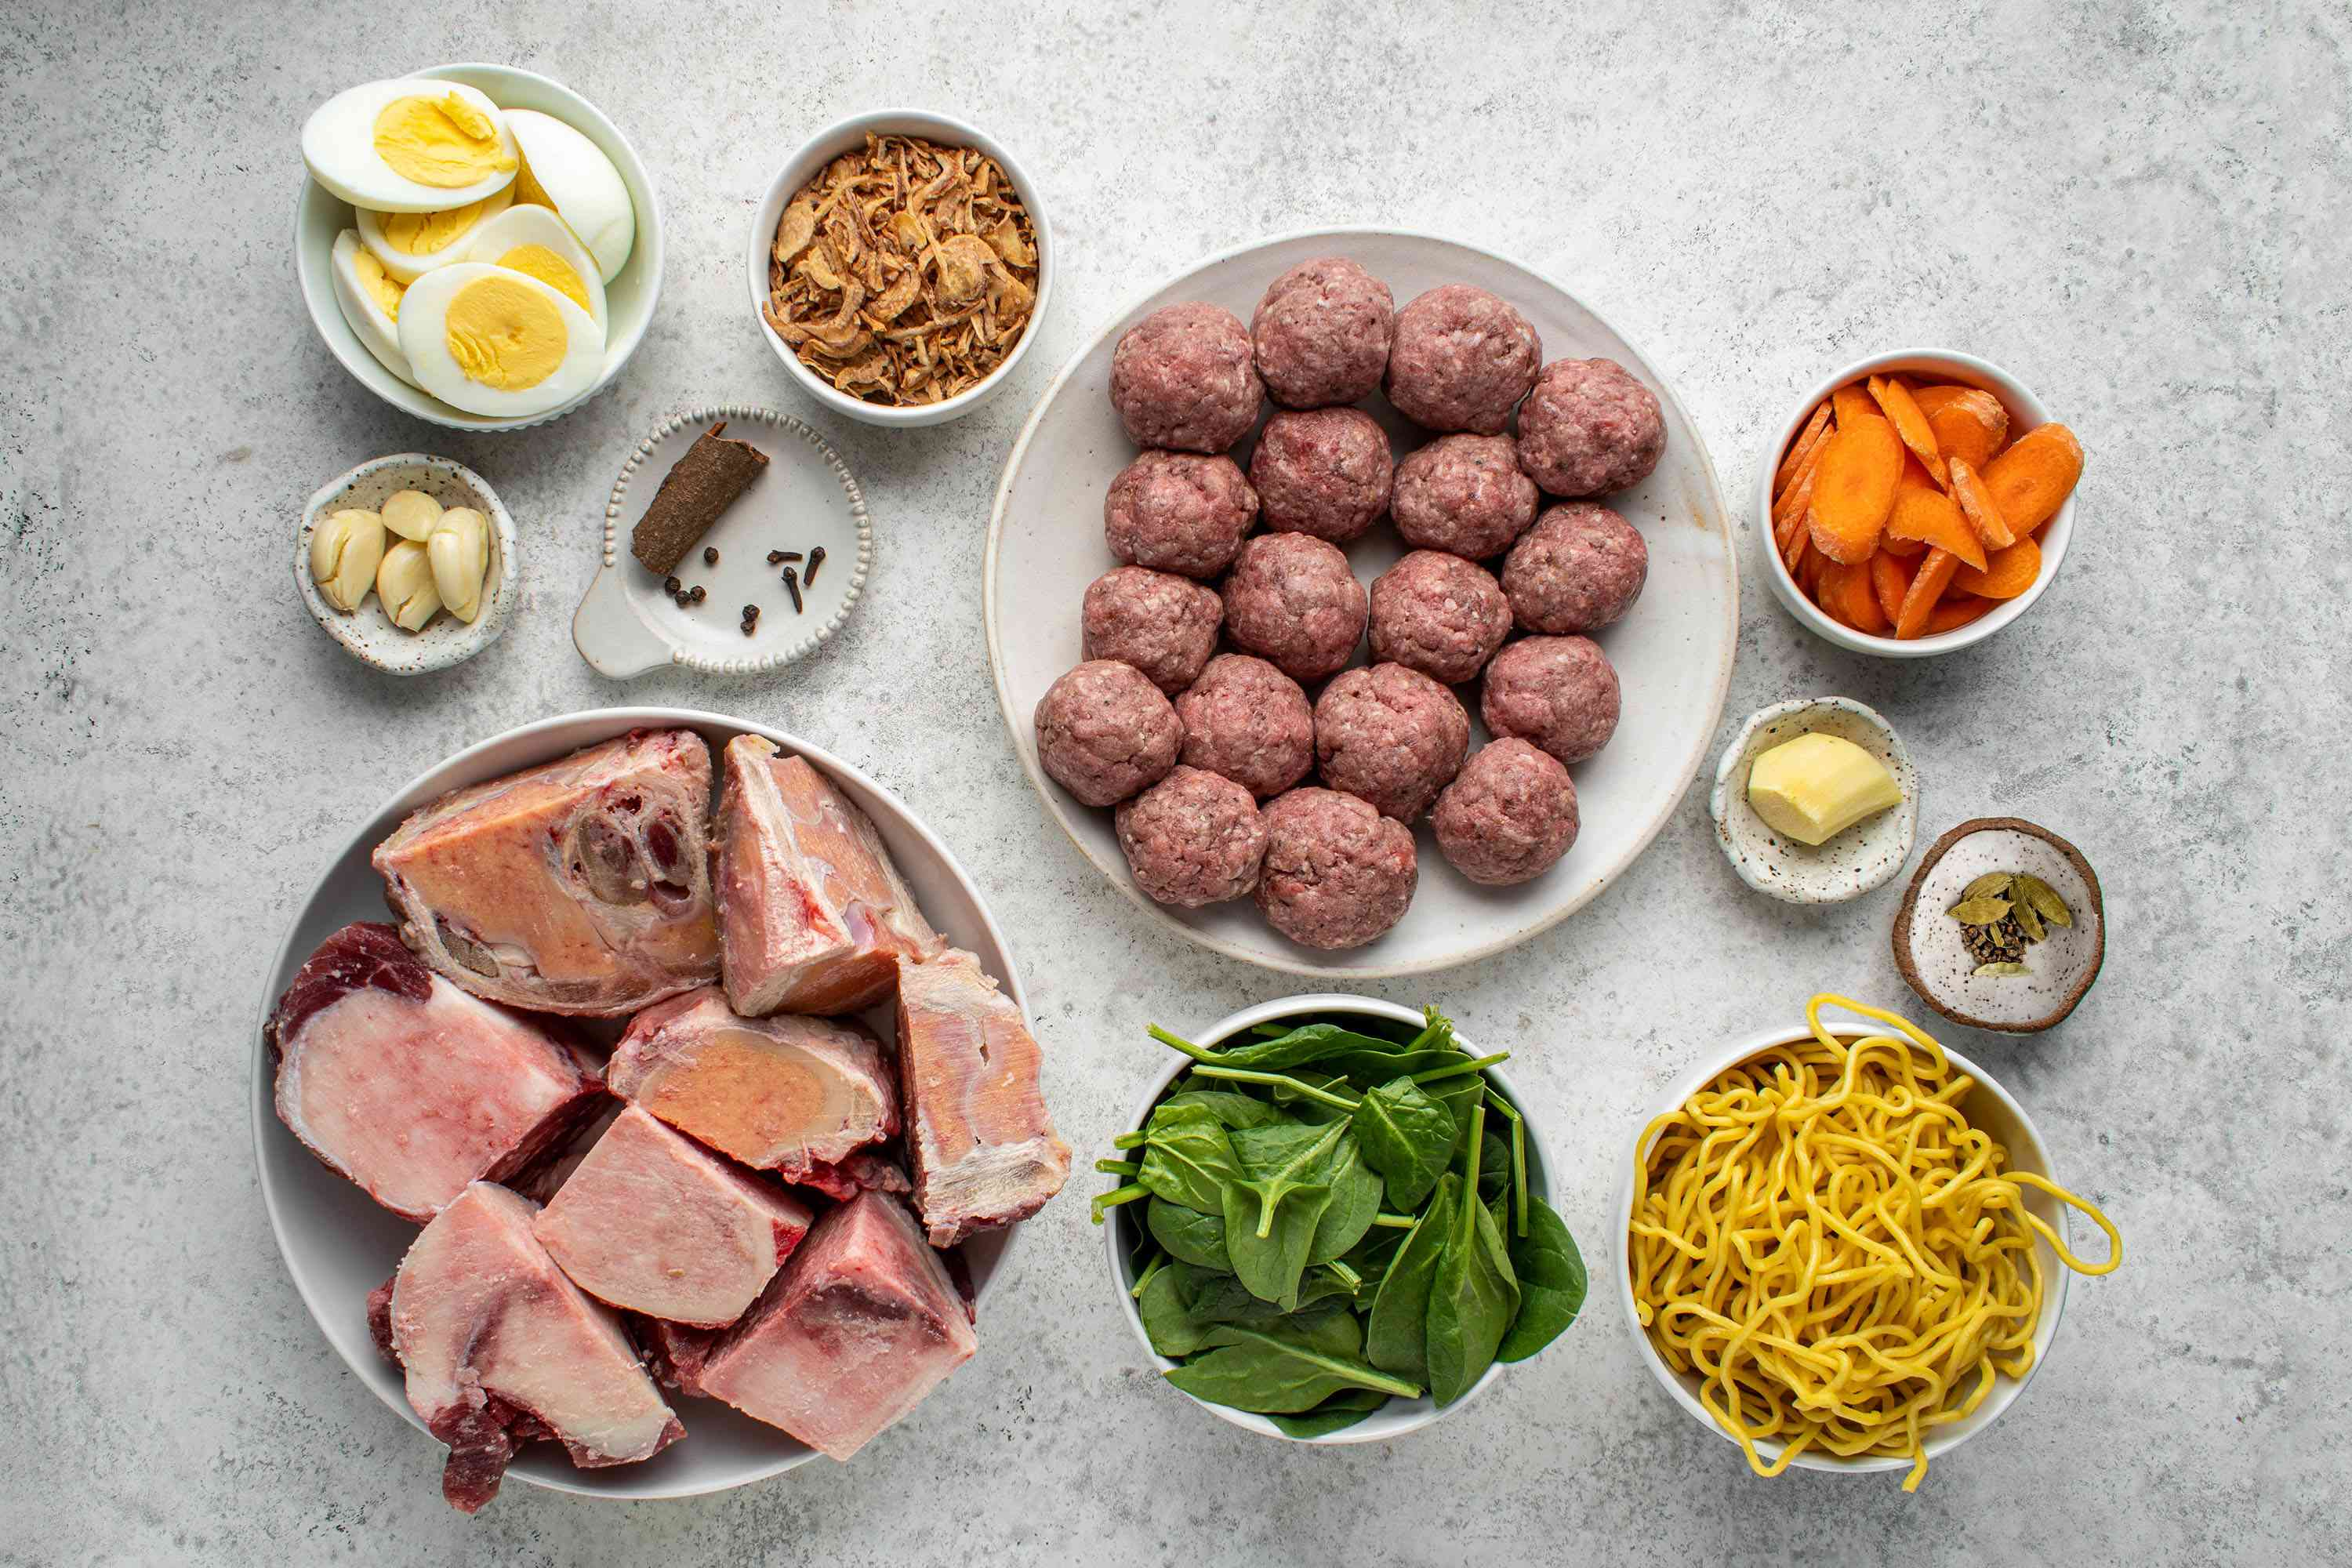 Mee Bakso (Indonesian Meatball and Noodle Soup) ingredients